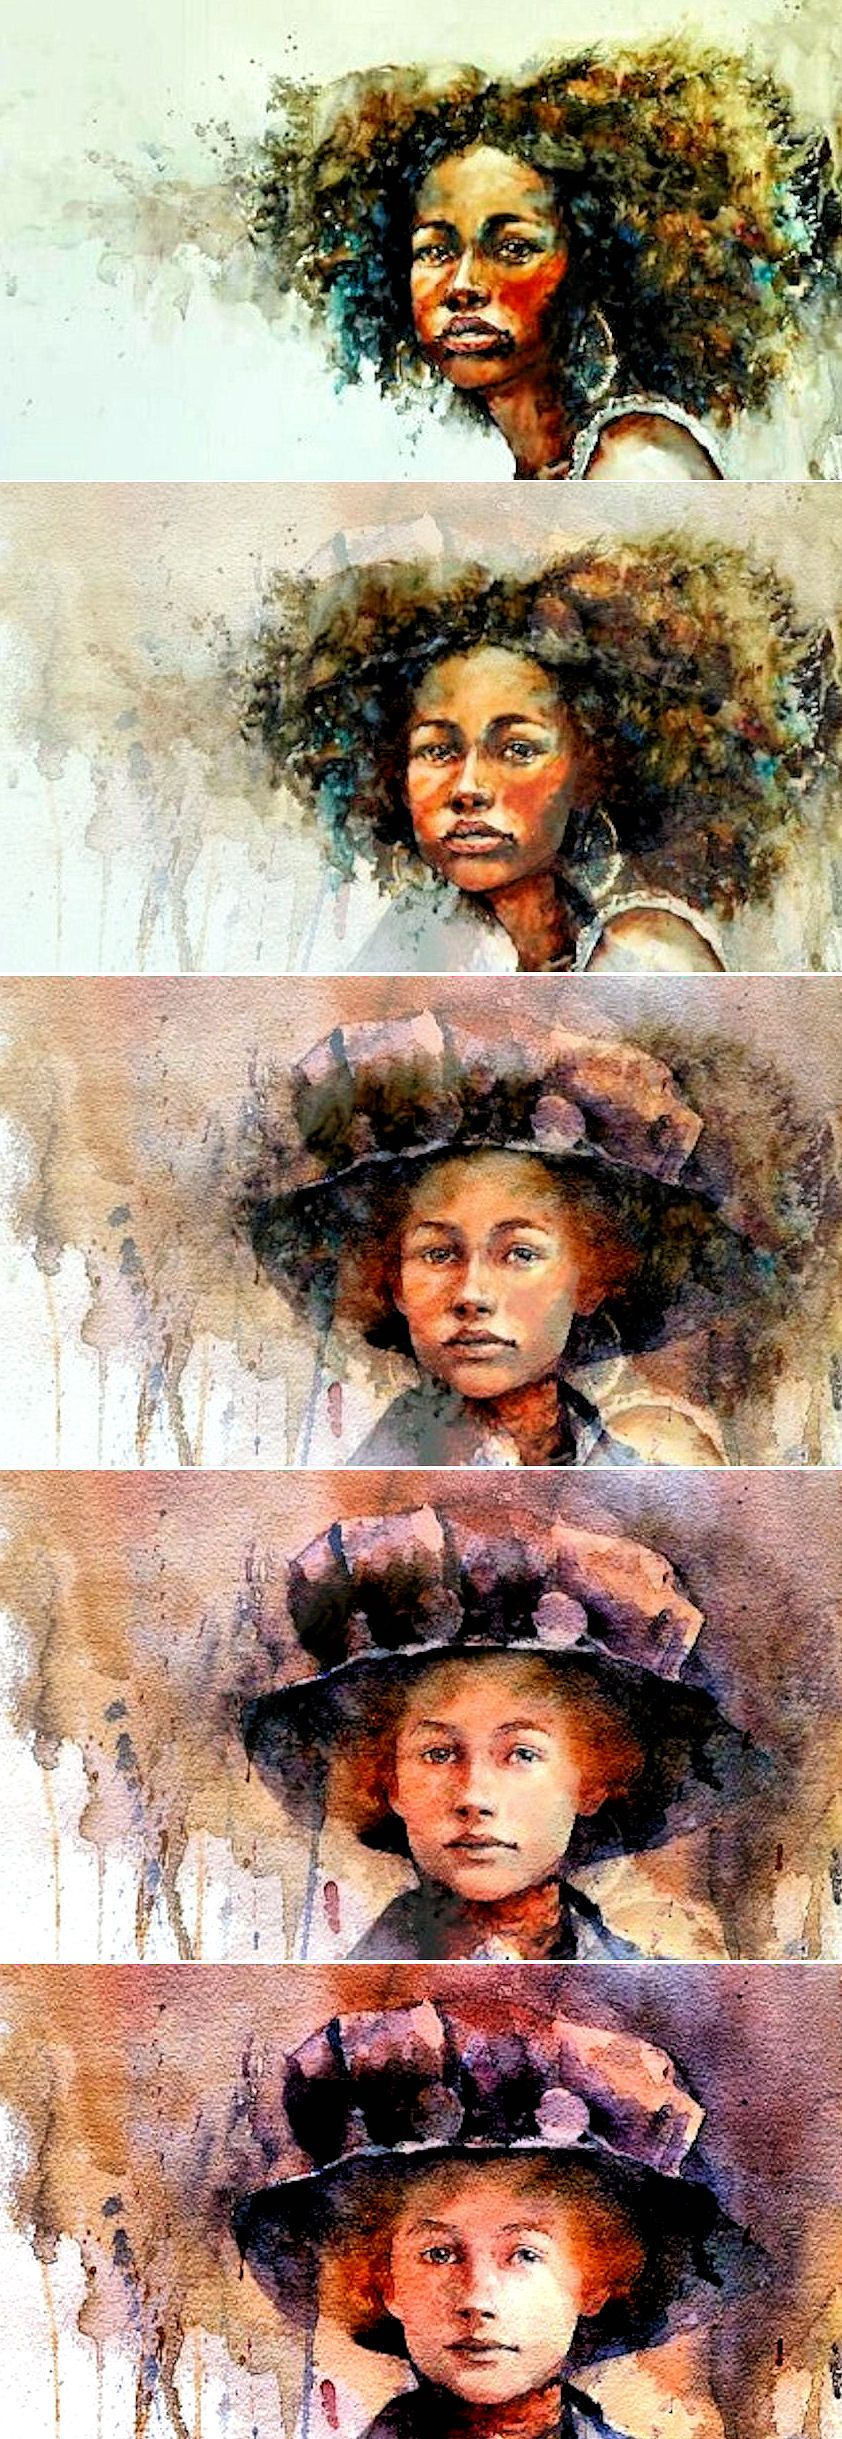 """Watercolor paintings V Morphing. Beautiful photo film of Watercolor paintings that blend together, using Morphing Music framed with the song: """"Romantic Marlimba"""" by Karpa. Watch: https://www.facebook.com/Drakre52/videos/780648618729390/ or https://vimeo.com/150159611"""